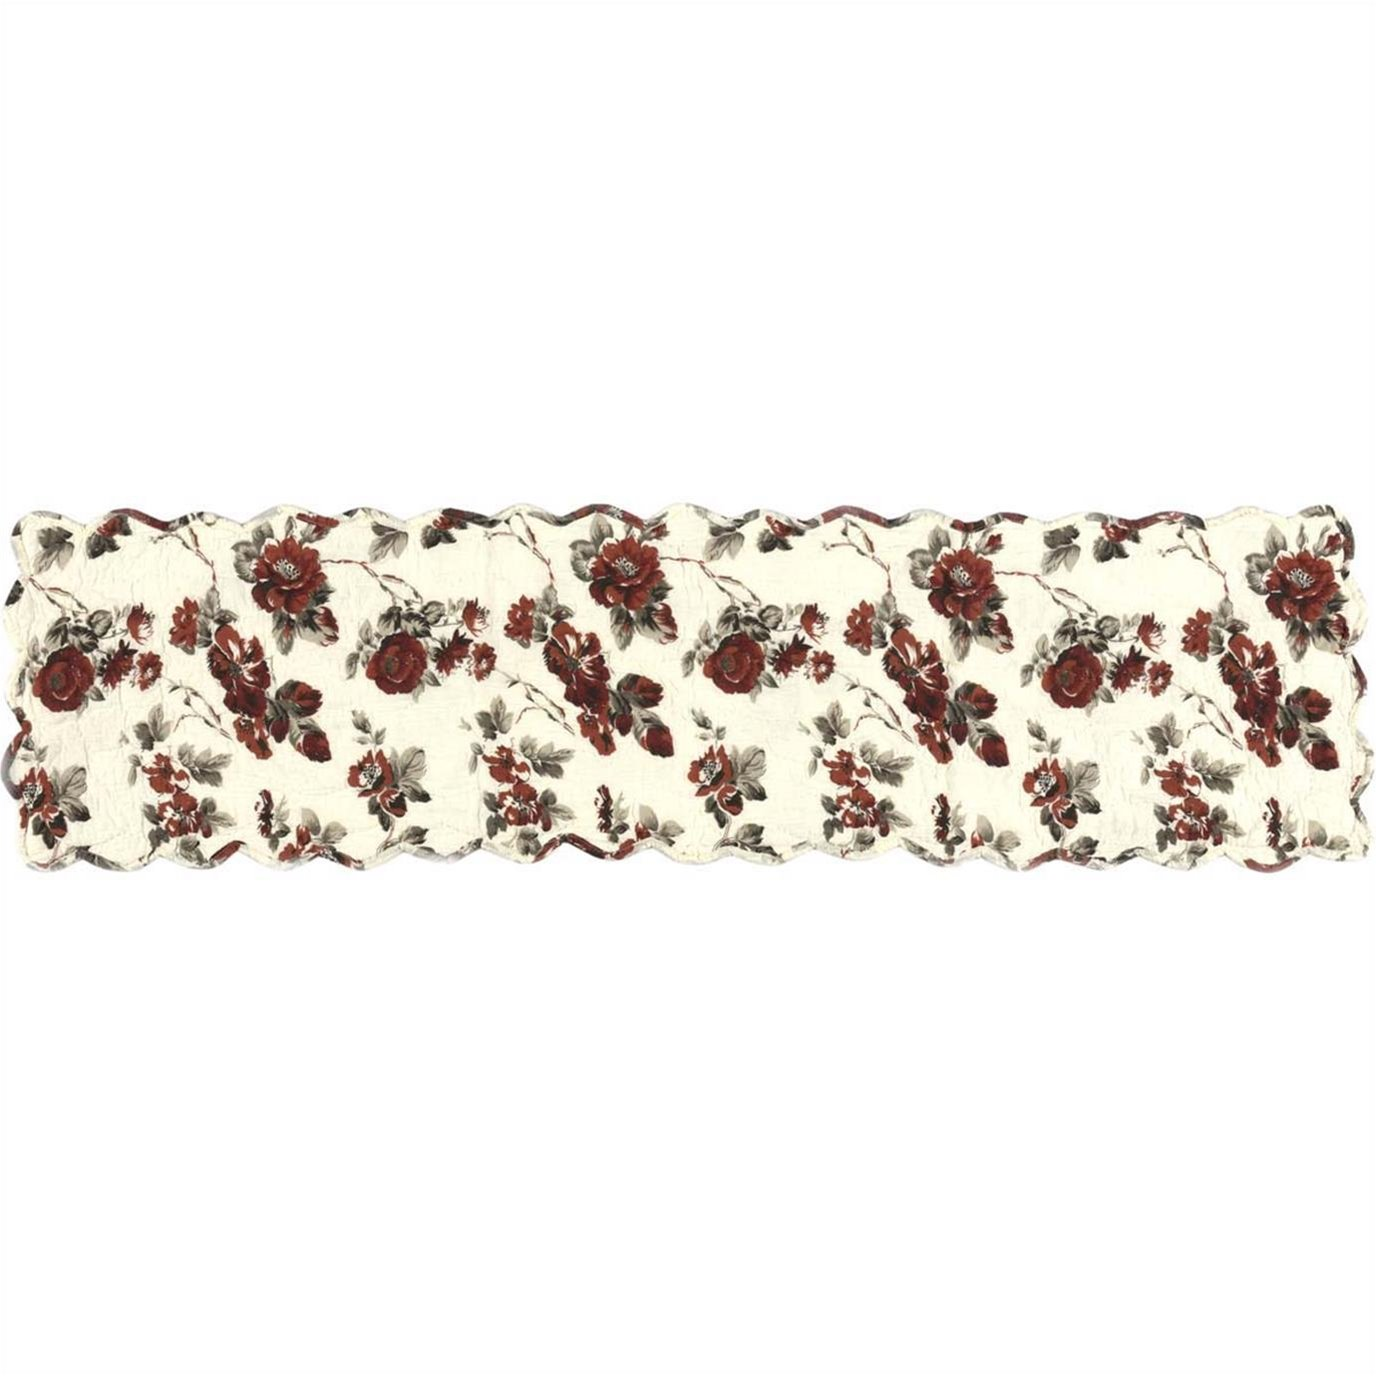 Mariell Quilted Runner 13x48